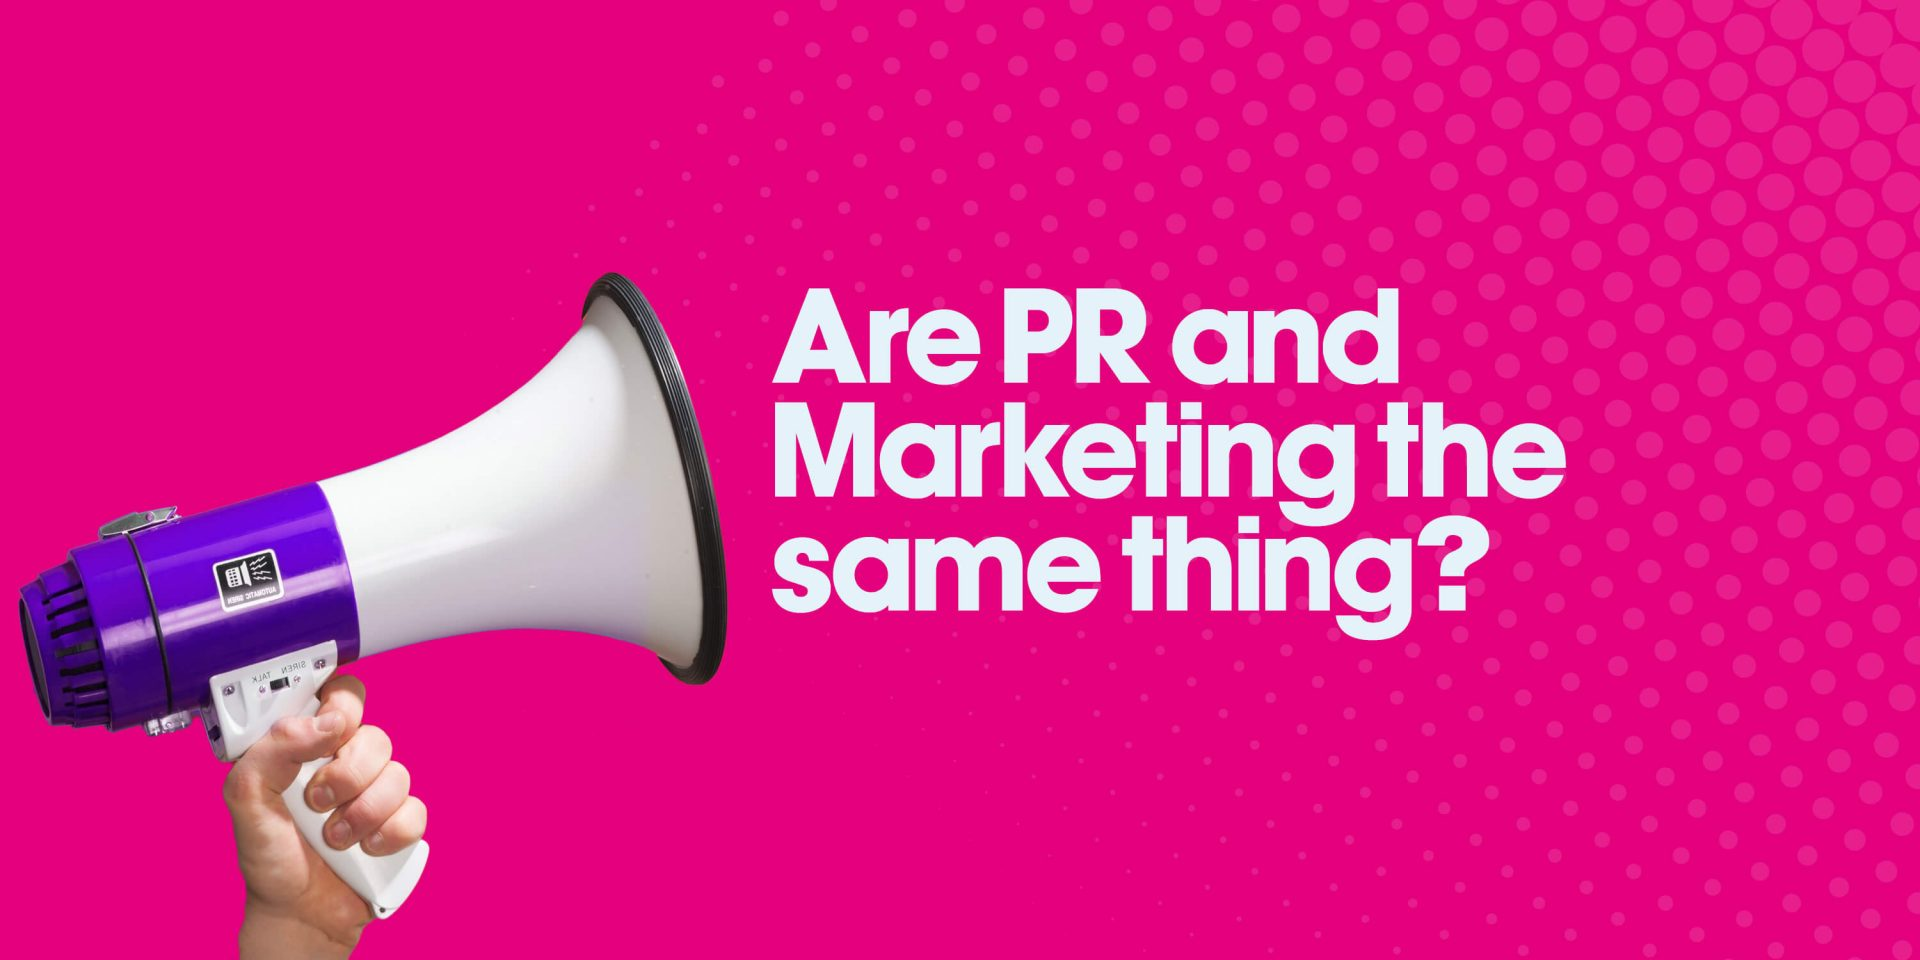 Are PR and Marketing the same thing? image